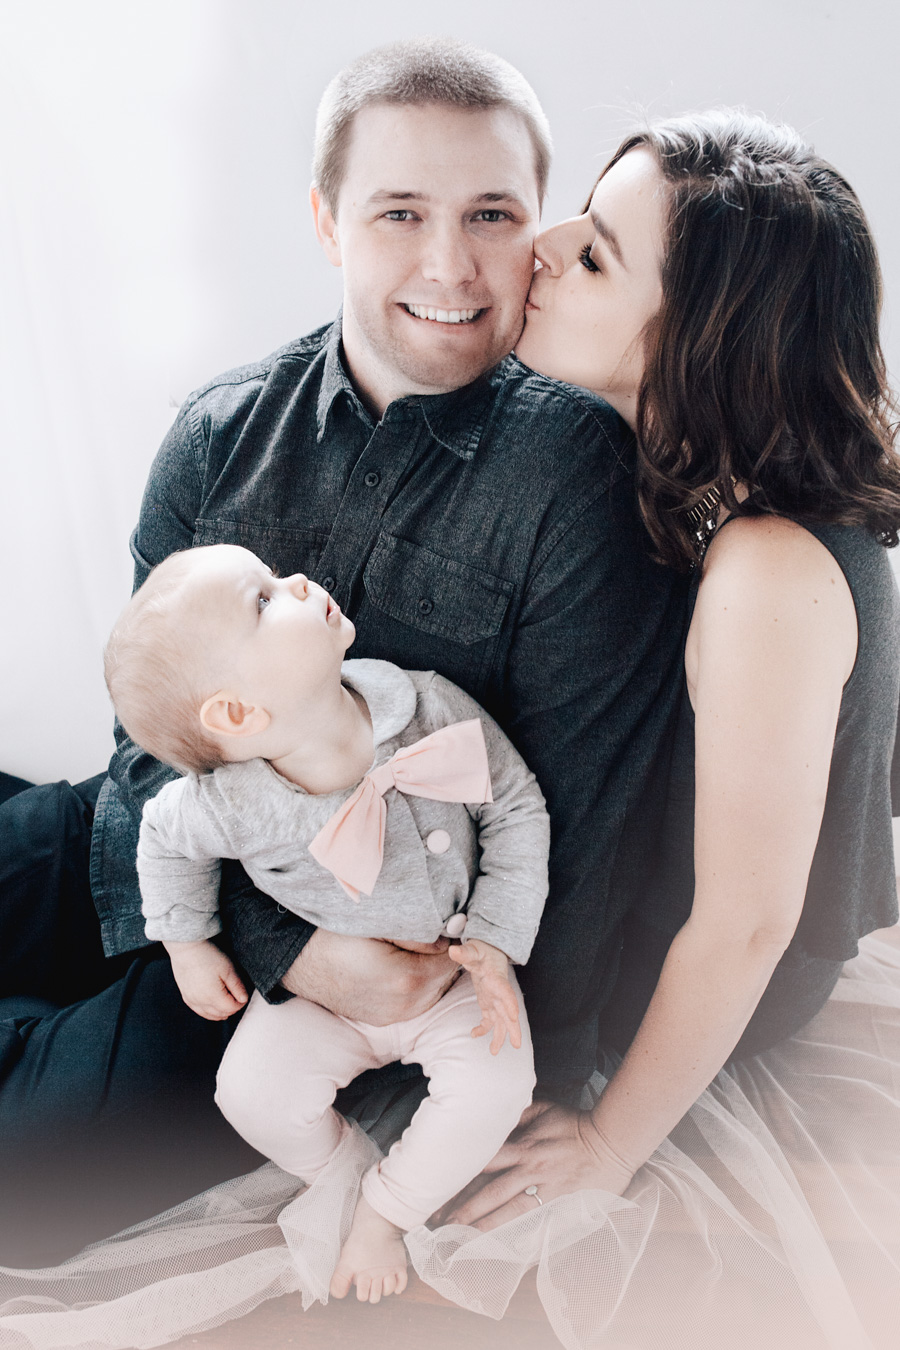 anna_kraft_photography_georgetown_square_studio_family_portrait-13 - Copy.jpg